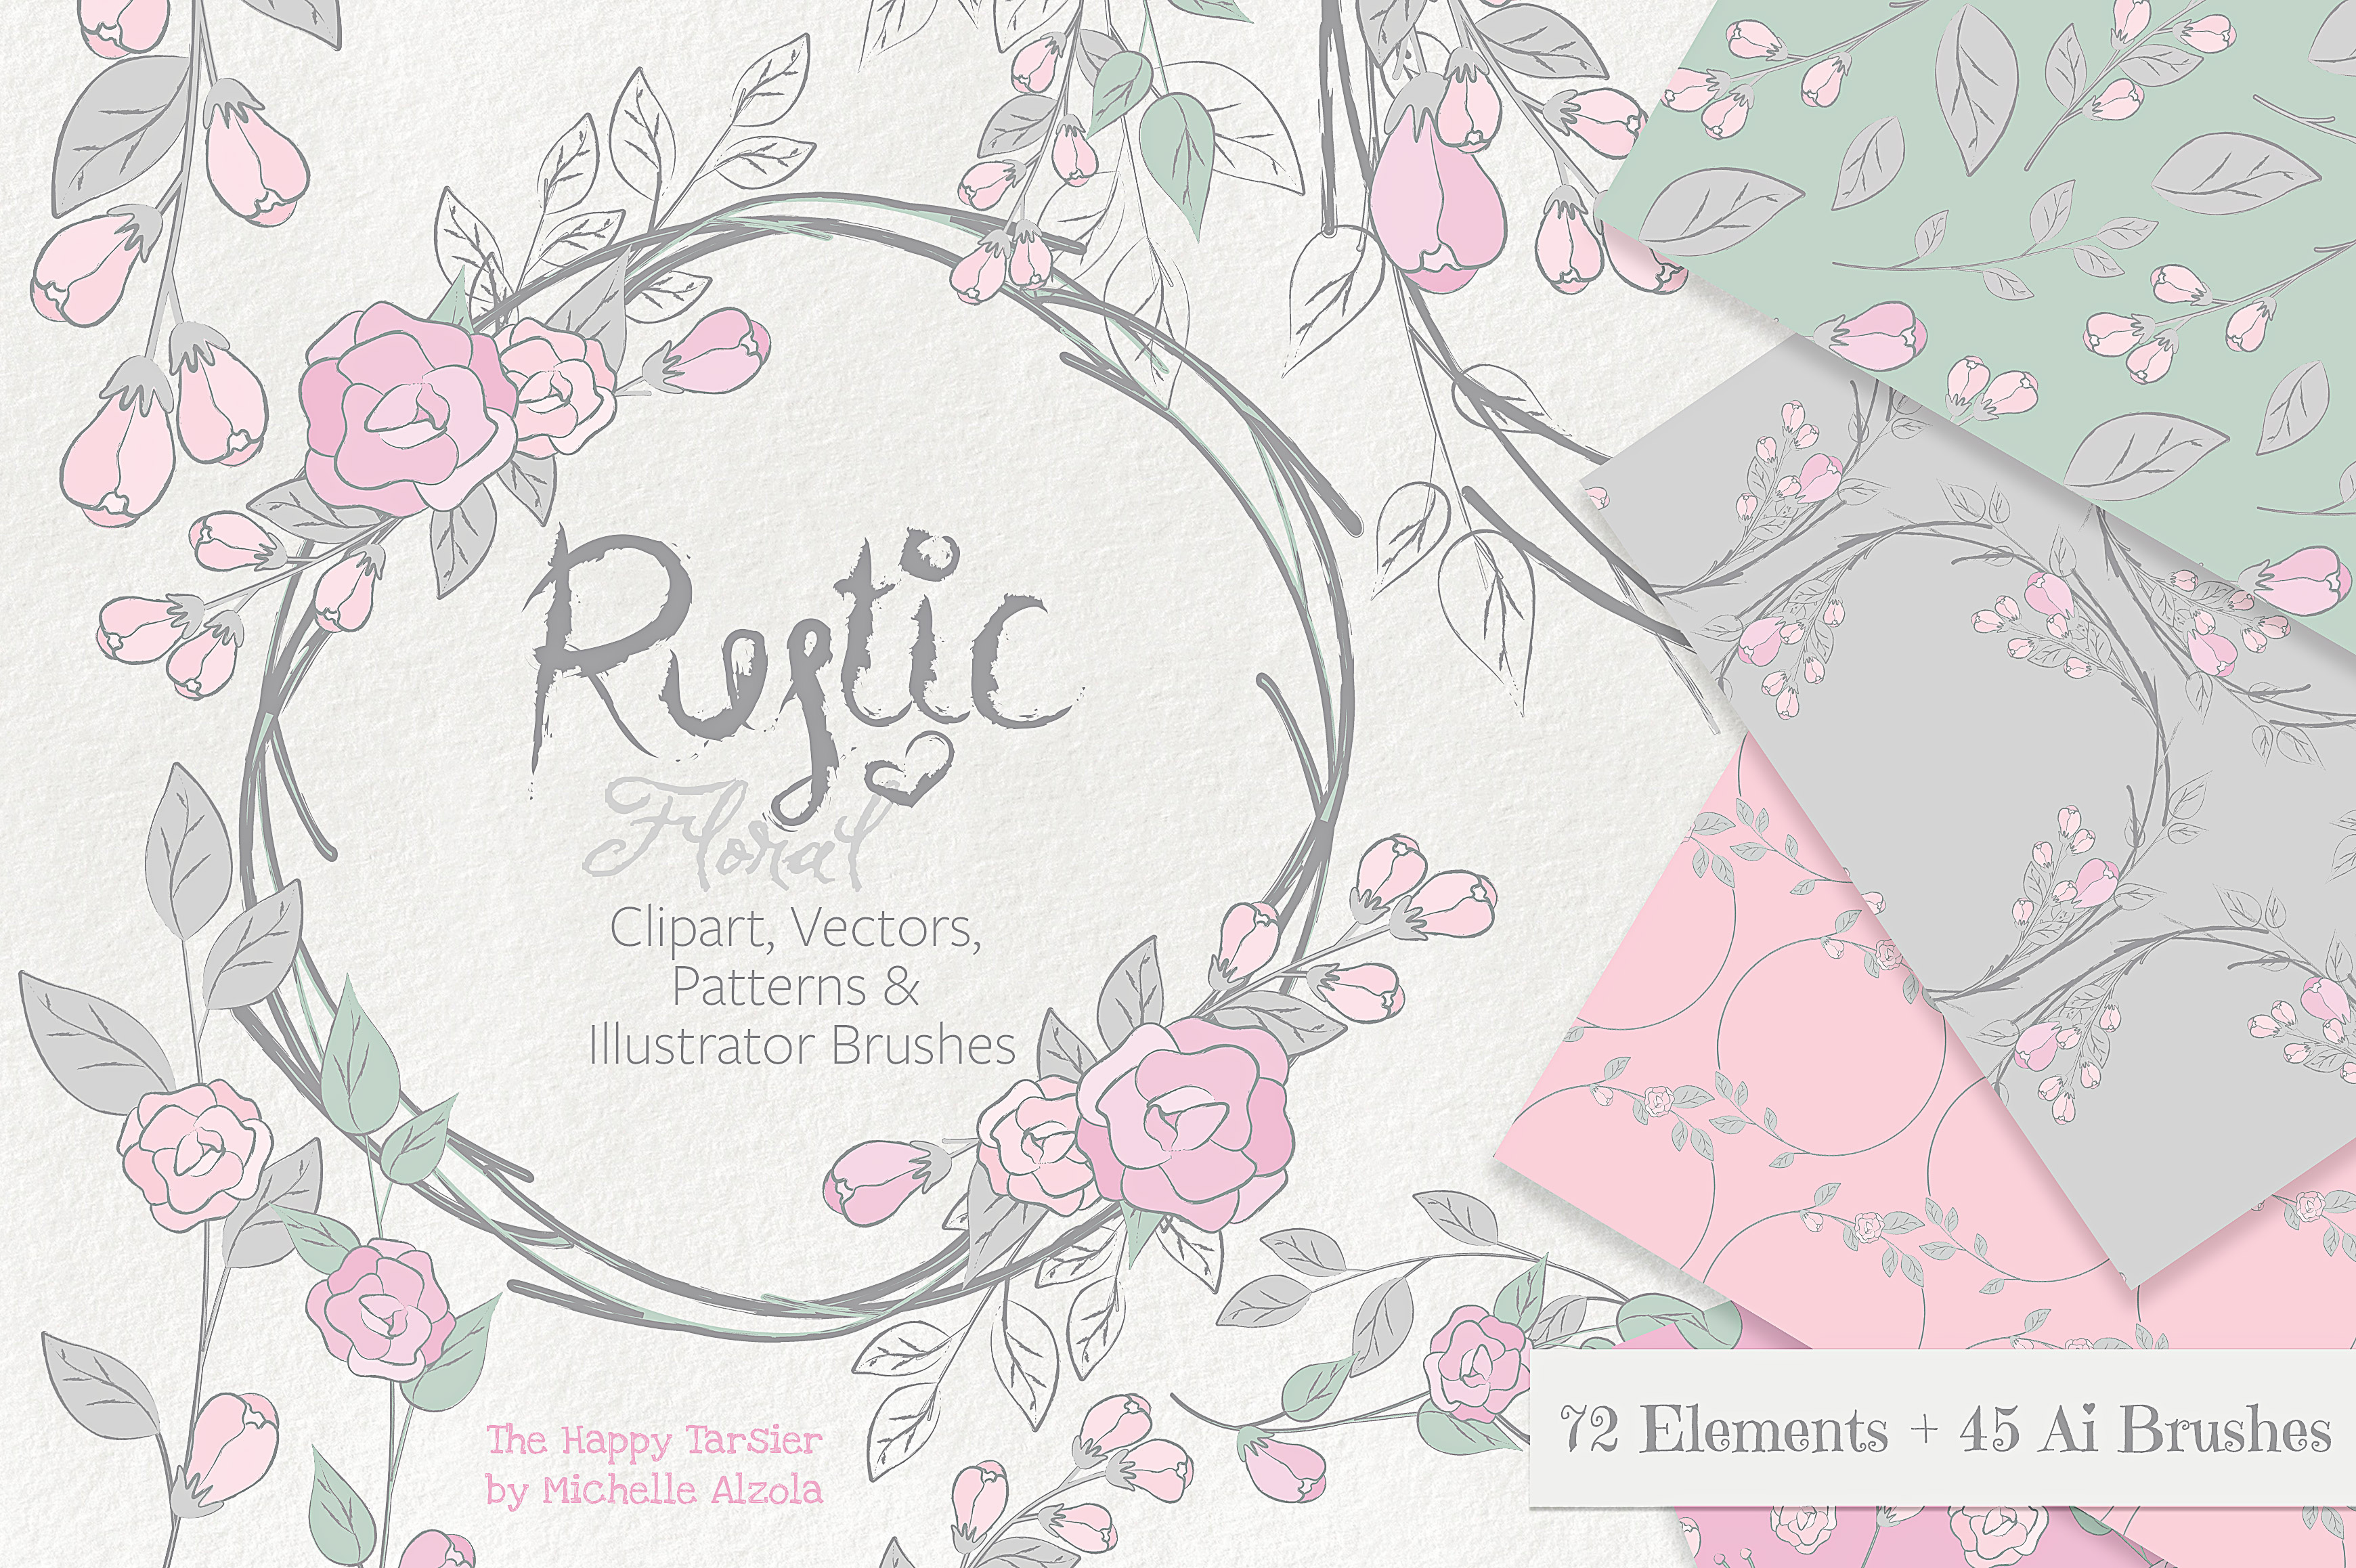 Rustic Floral Graphics Pack Graphic By Michelle Alzola